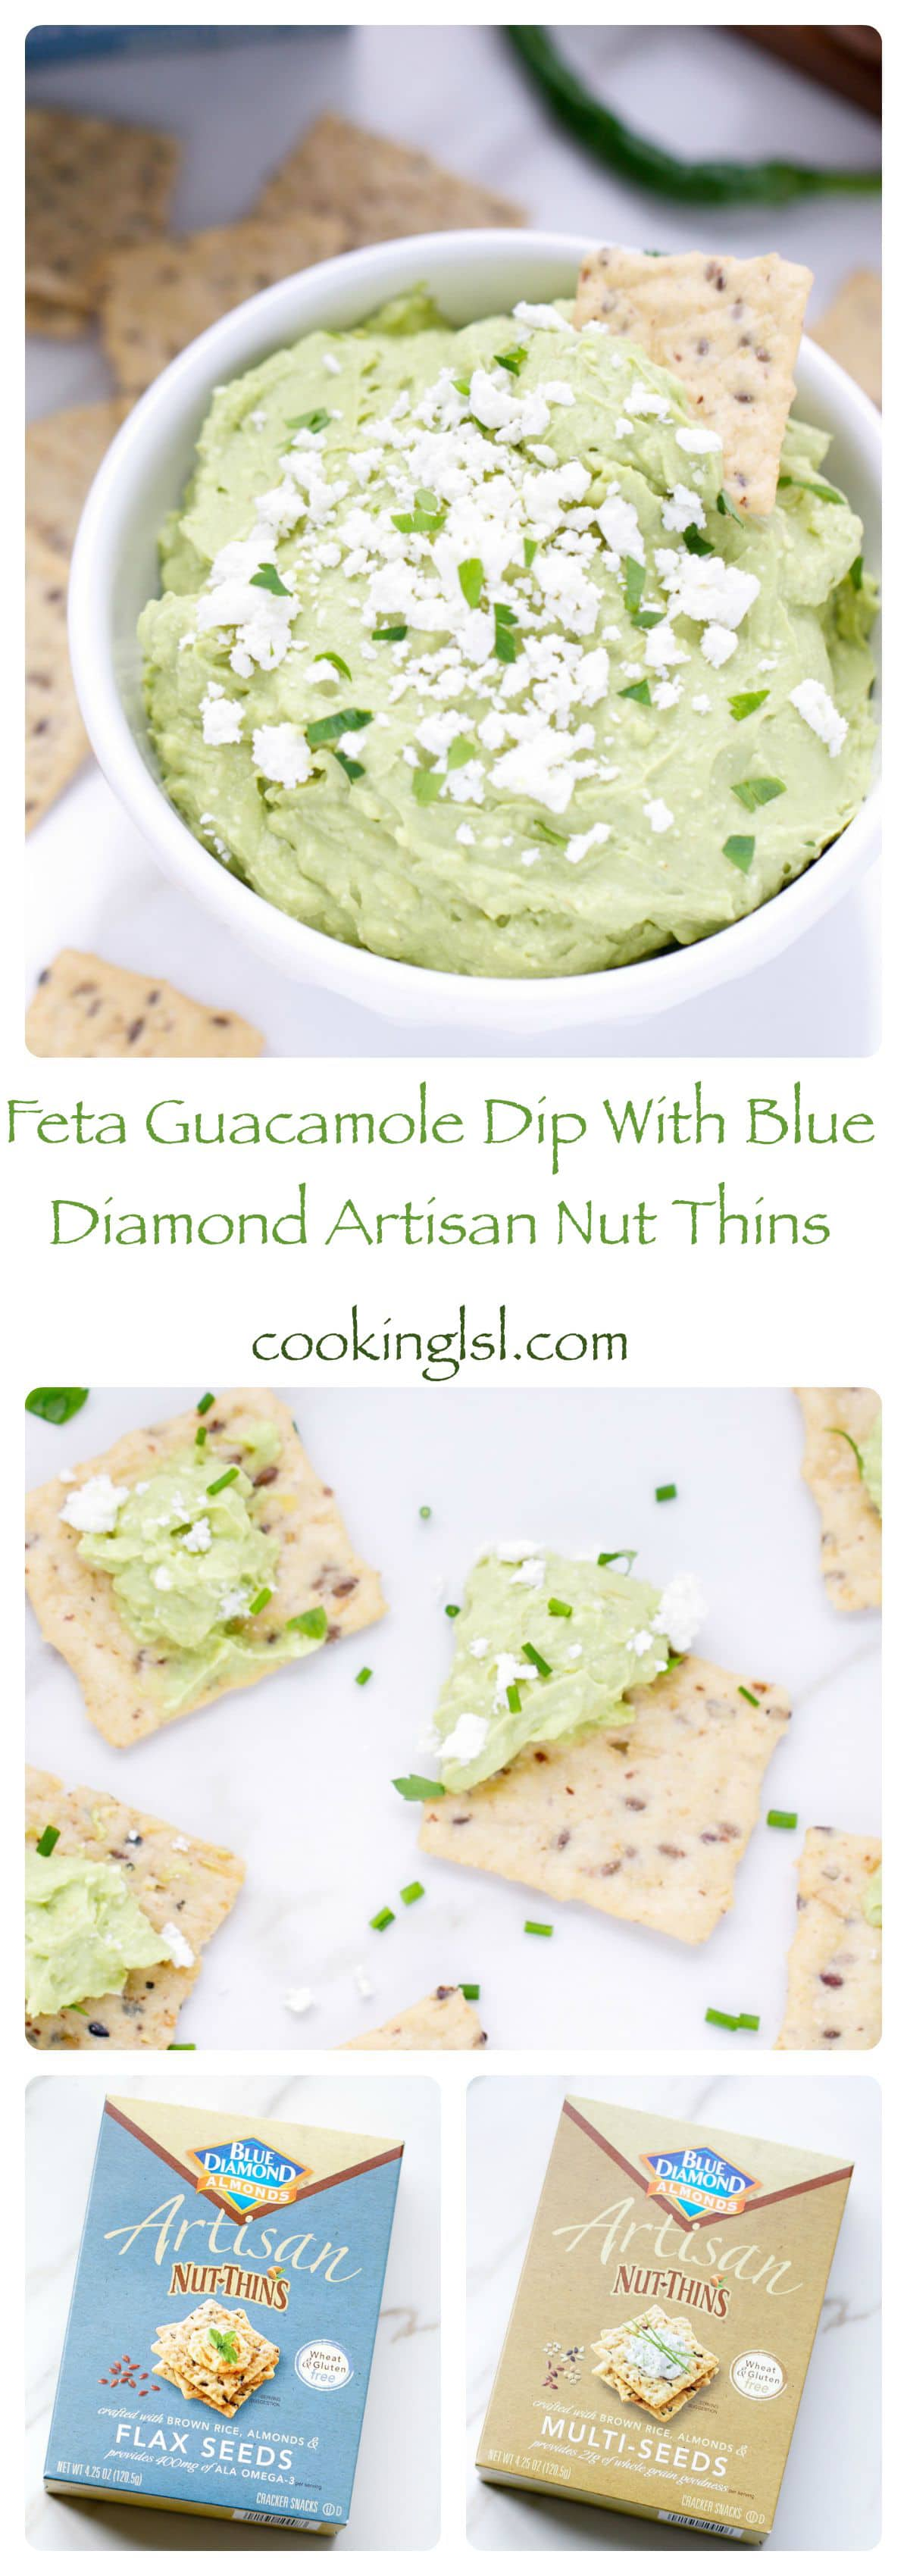 blue-diamond-artisan-nut-thins-feta-guacamole-dip